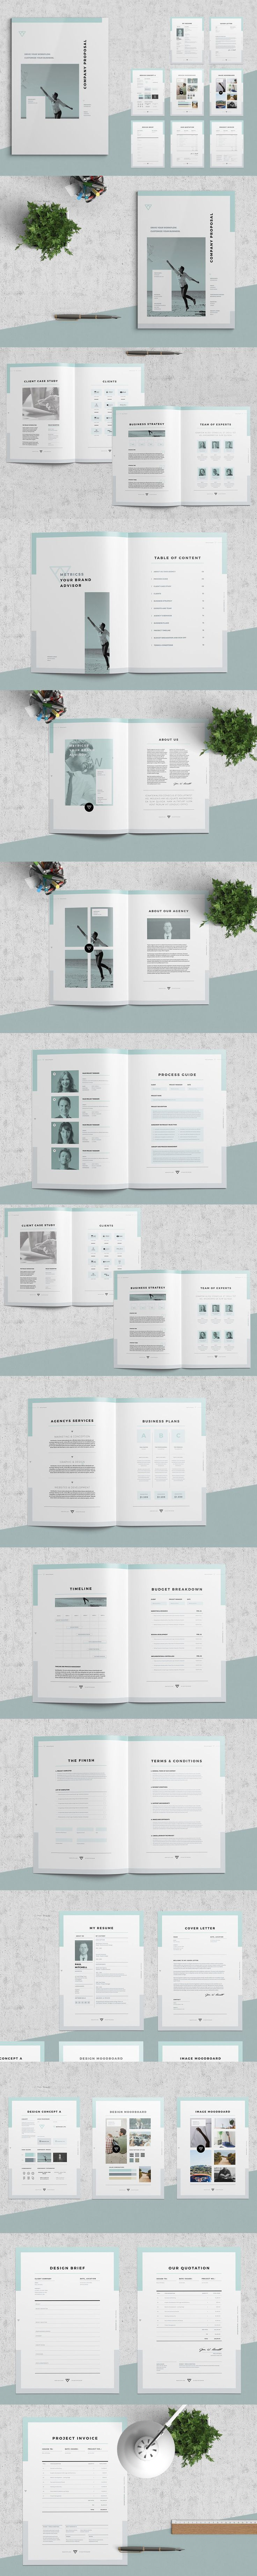 Clean and Professional Proposal / Resume / Covering Letter / Brief / Quotation / Invoice Templates InDesign INDD